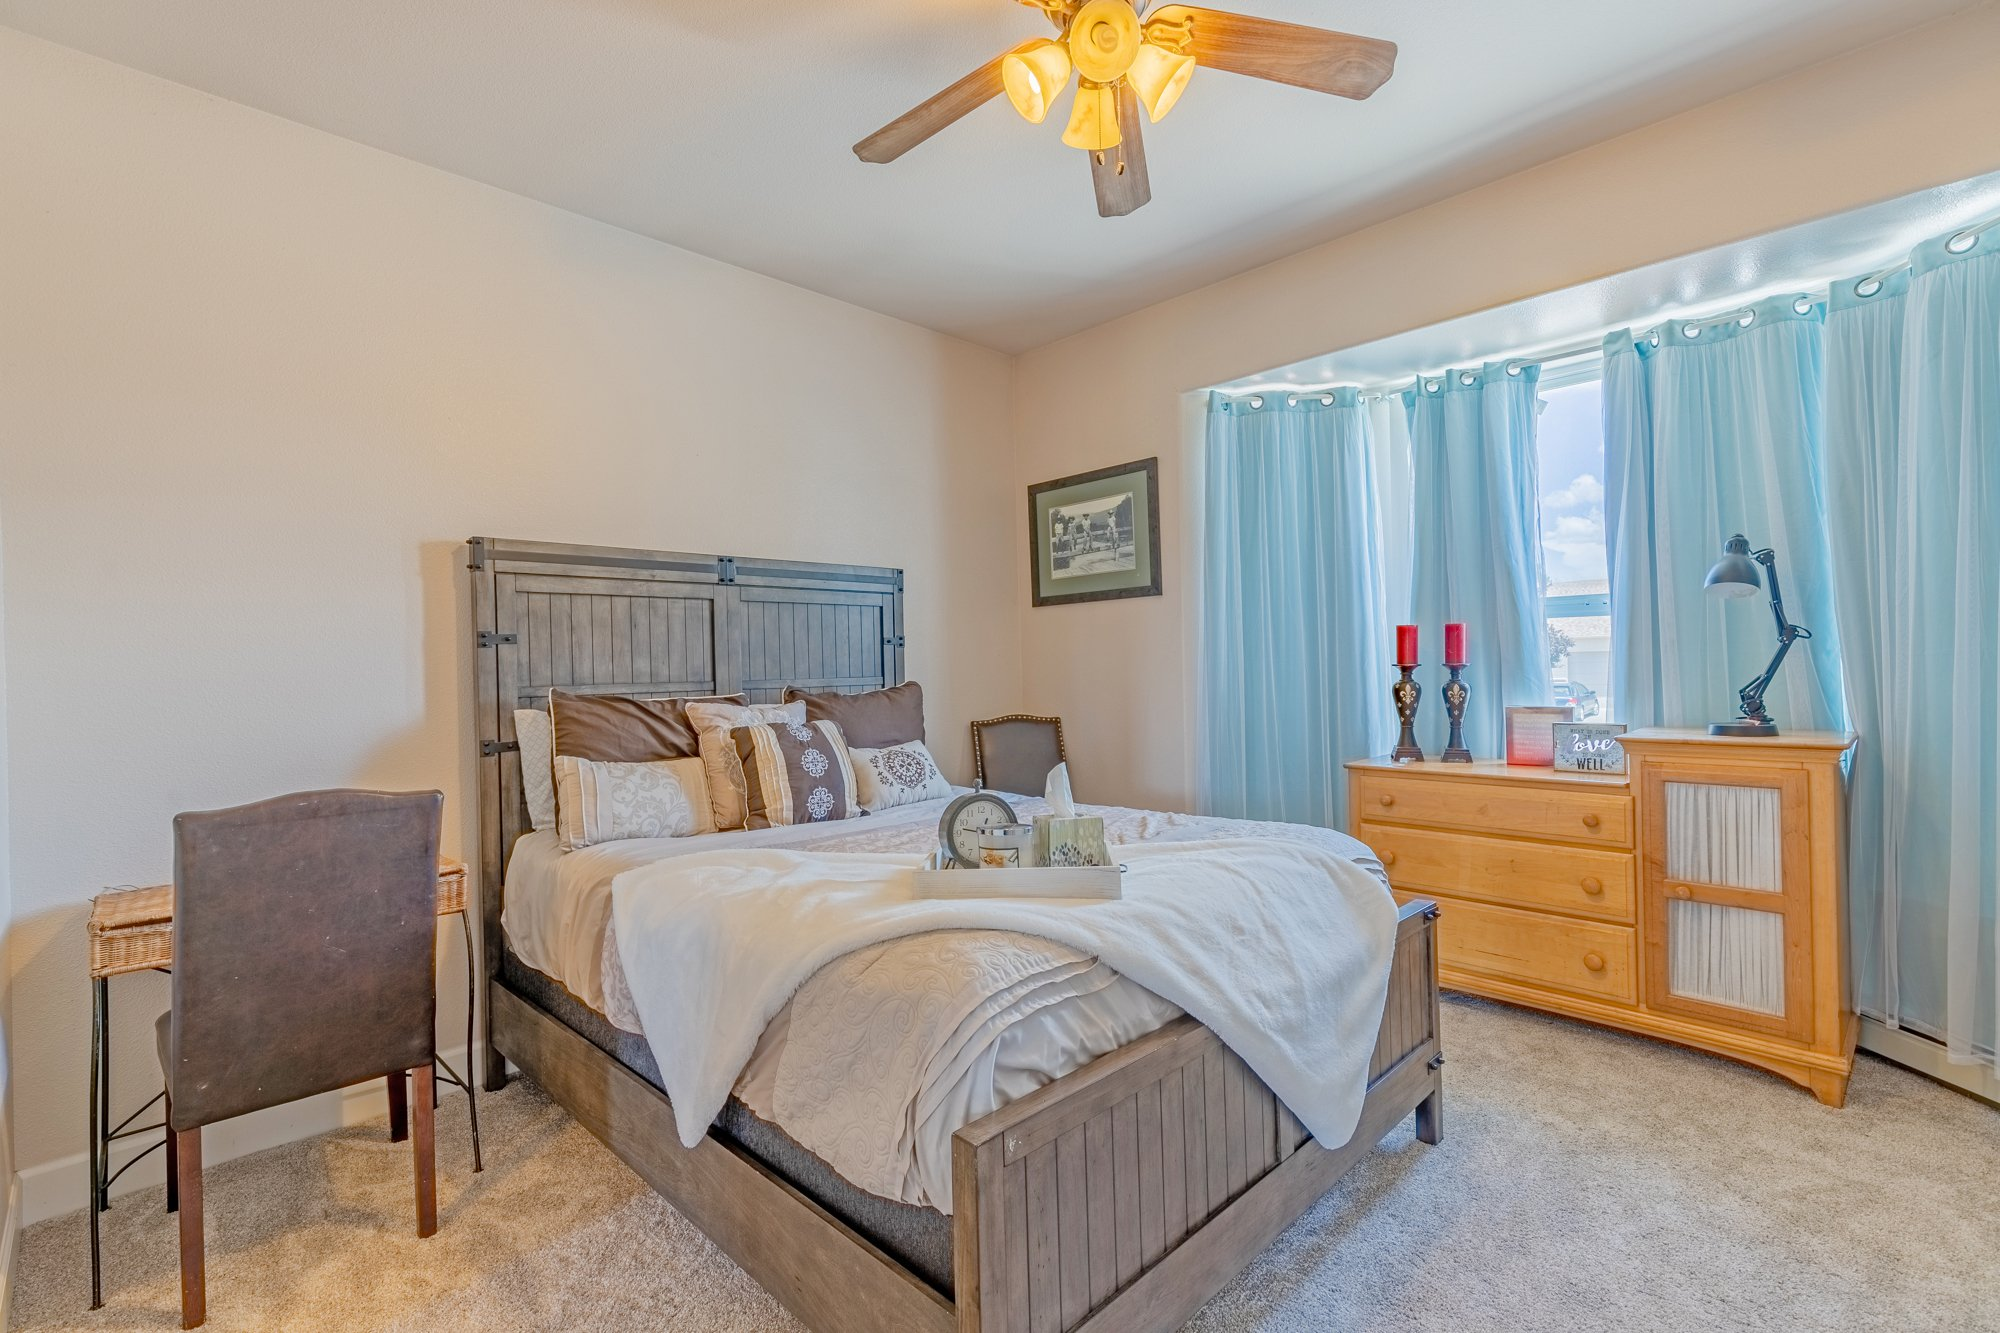 Bedroom with Bay Windows - 2924 Lost Creek Rd S. Montrose, CO 81401 - Atha Team Real Estate Agents